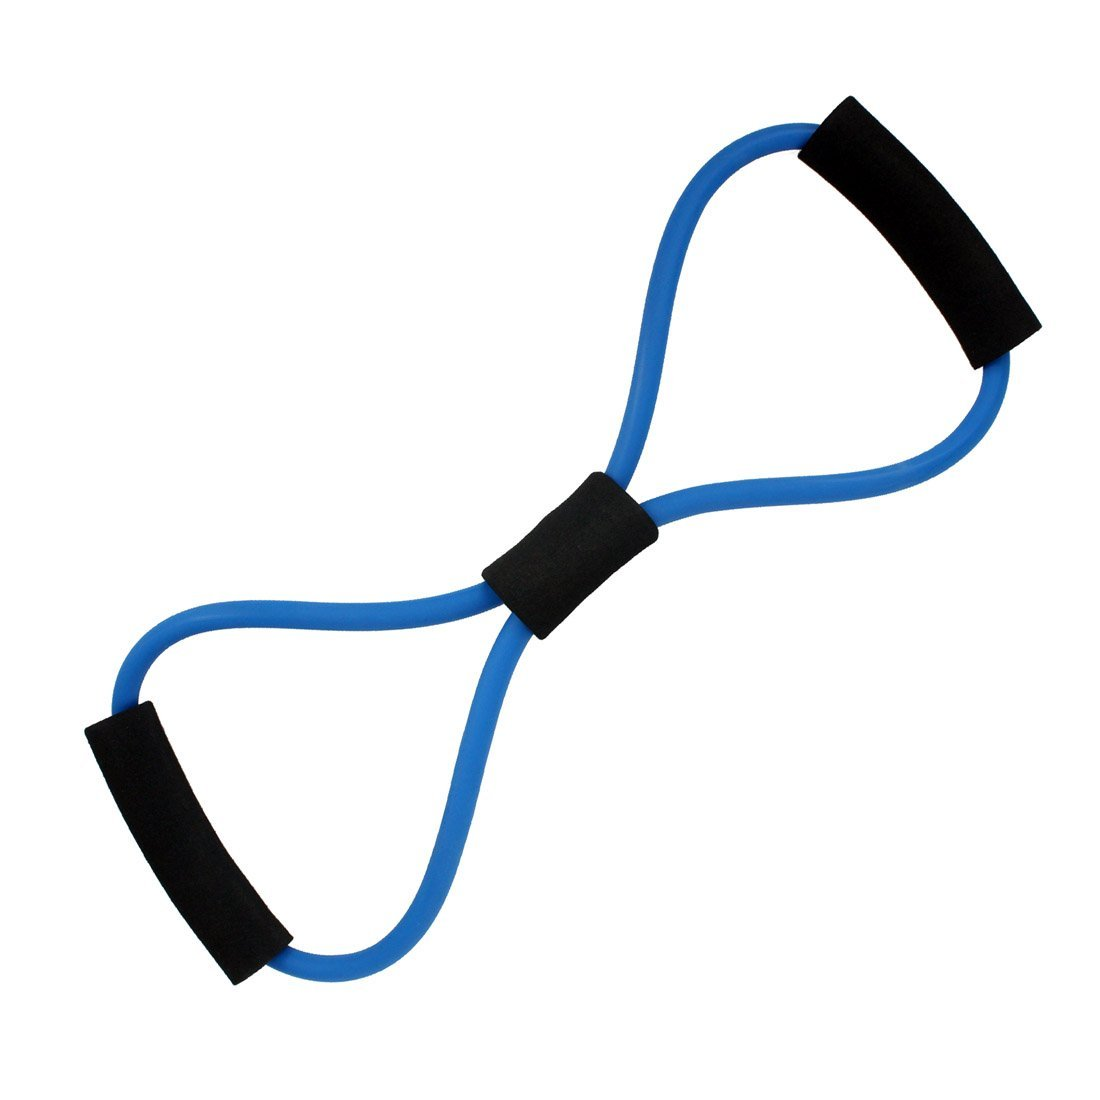 Balego™ Figure 8 Resistance Tubing, extra-heavy (blue) 14 lbs.